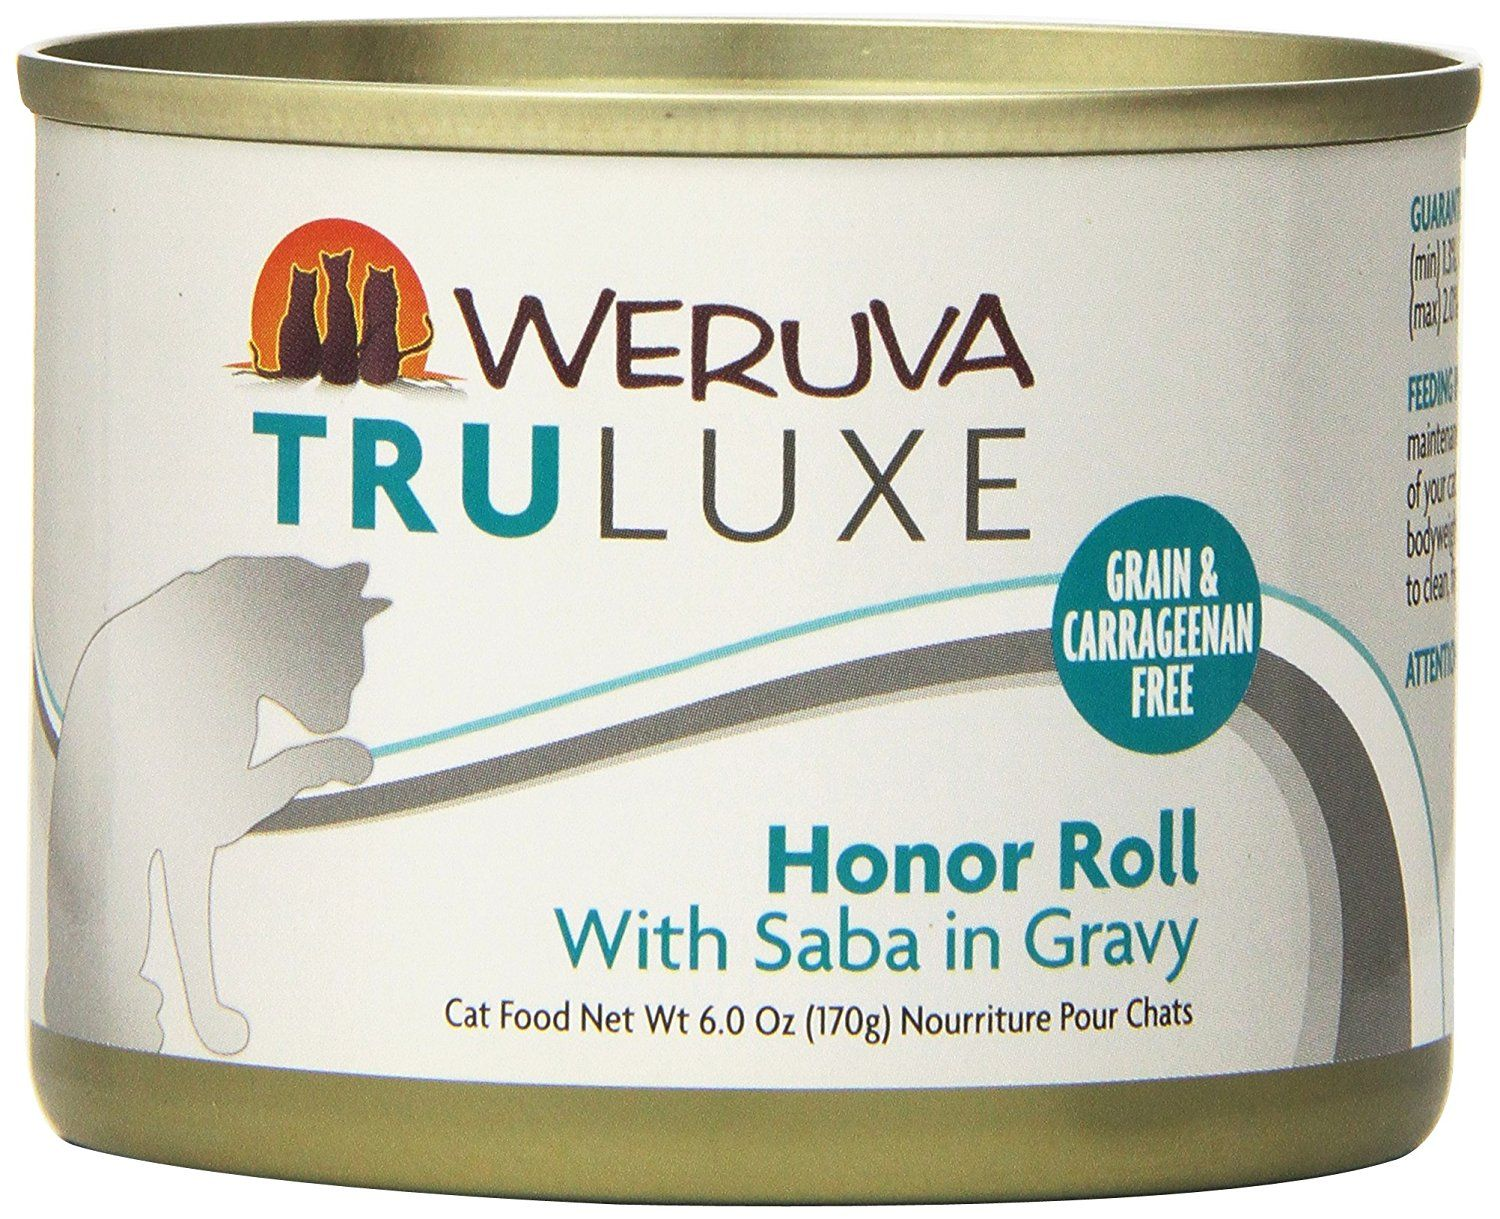 Weruva Truluxe Honor Roll Canned Cat Food For Pets 6 Ounce Gravy Review More Details Here Best Cat Food Canned Cat Food Cat Food Best Cat Food